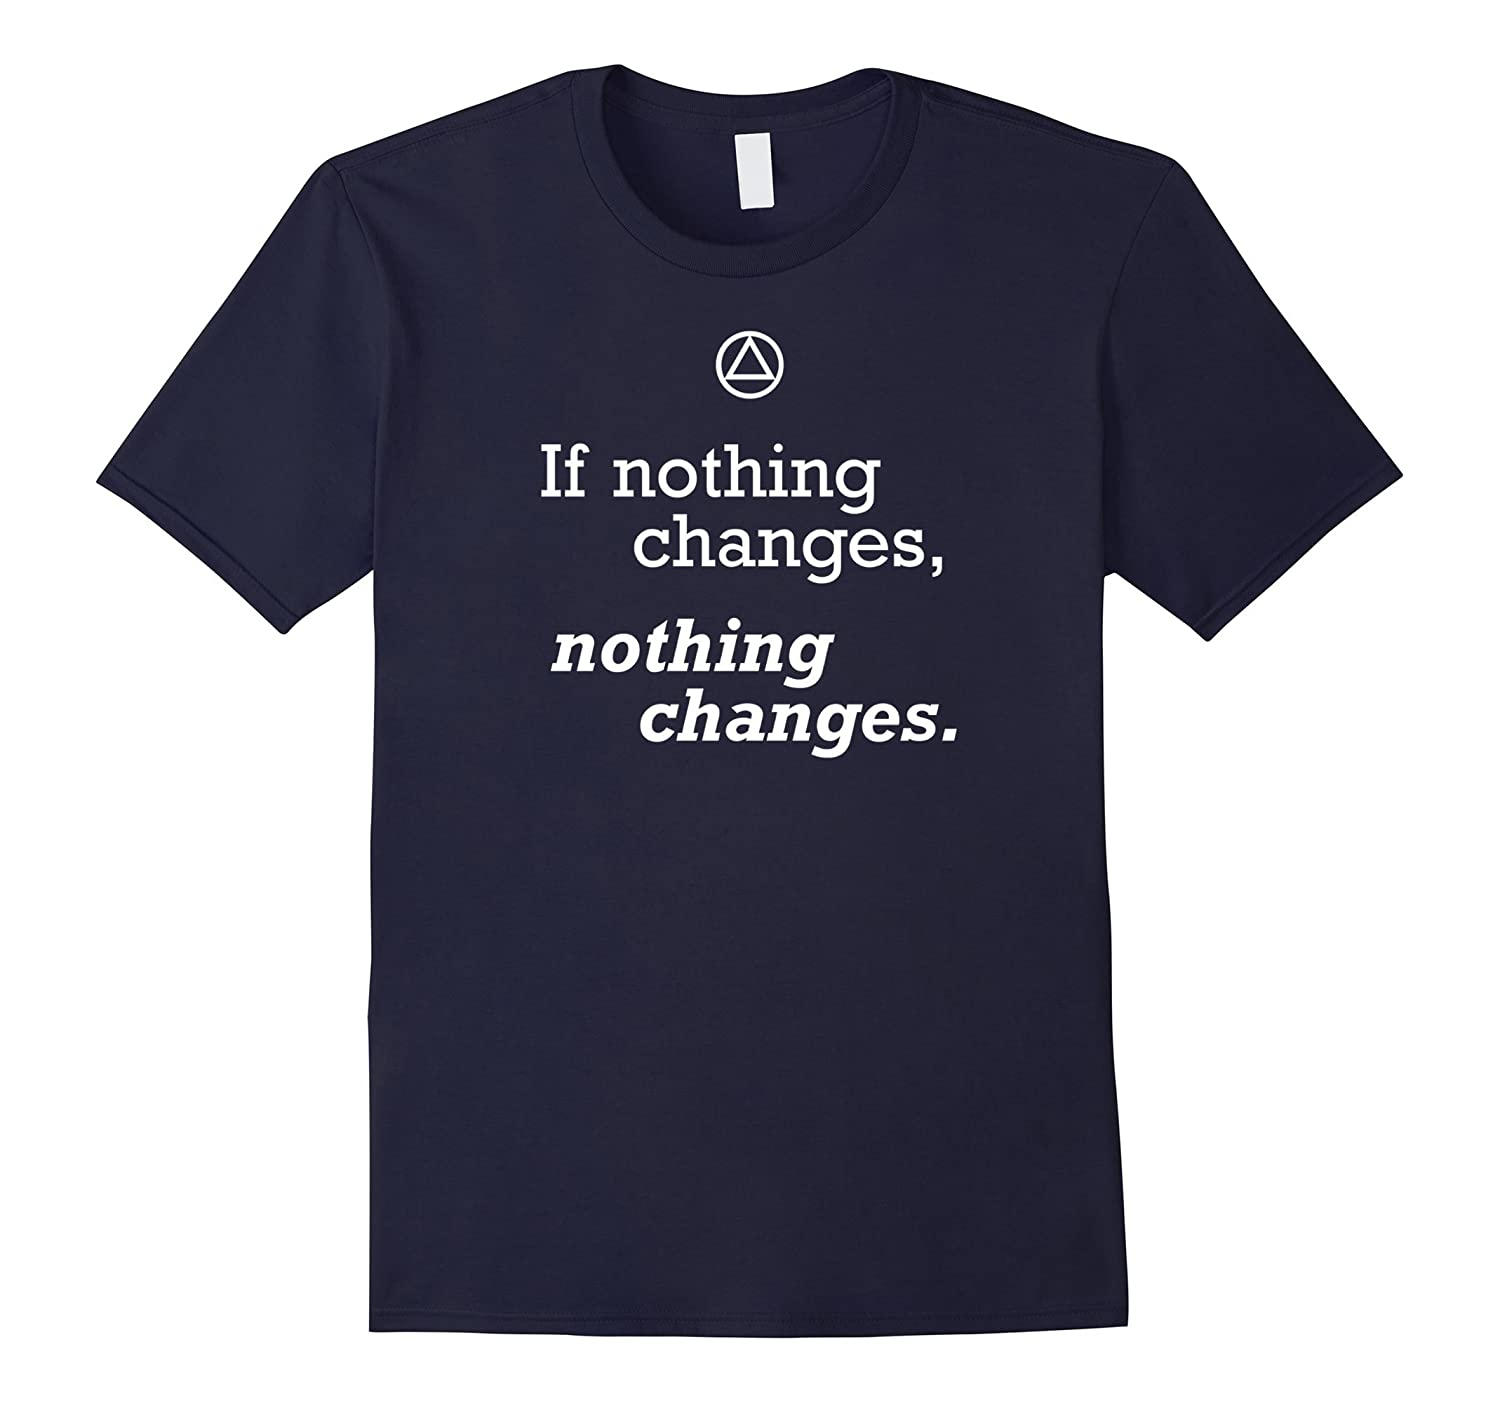 'If Nothing Changes, Nothing Changes' – Funny AA T-Shirt